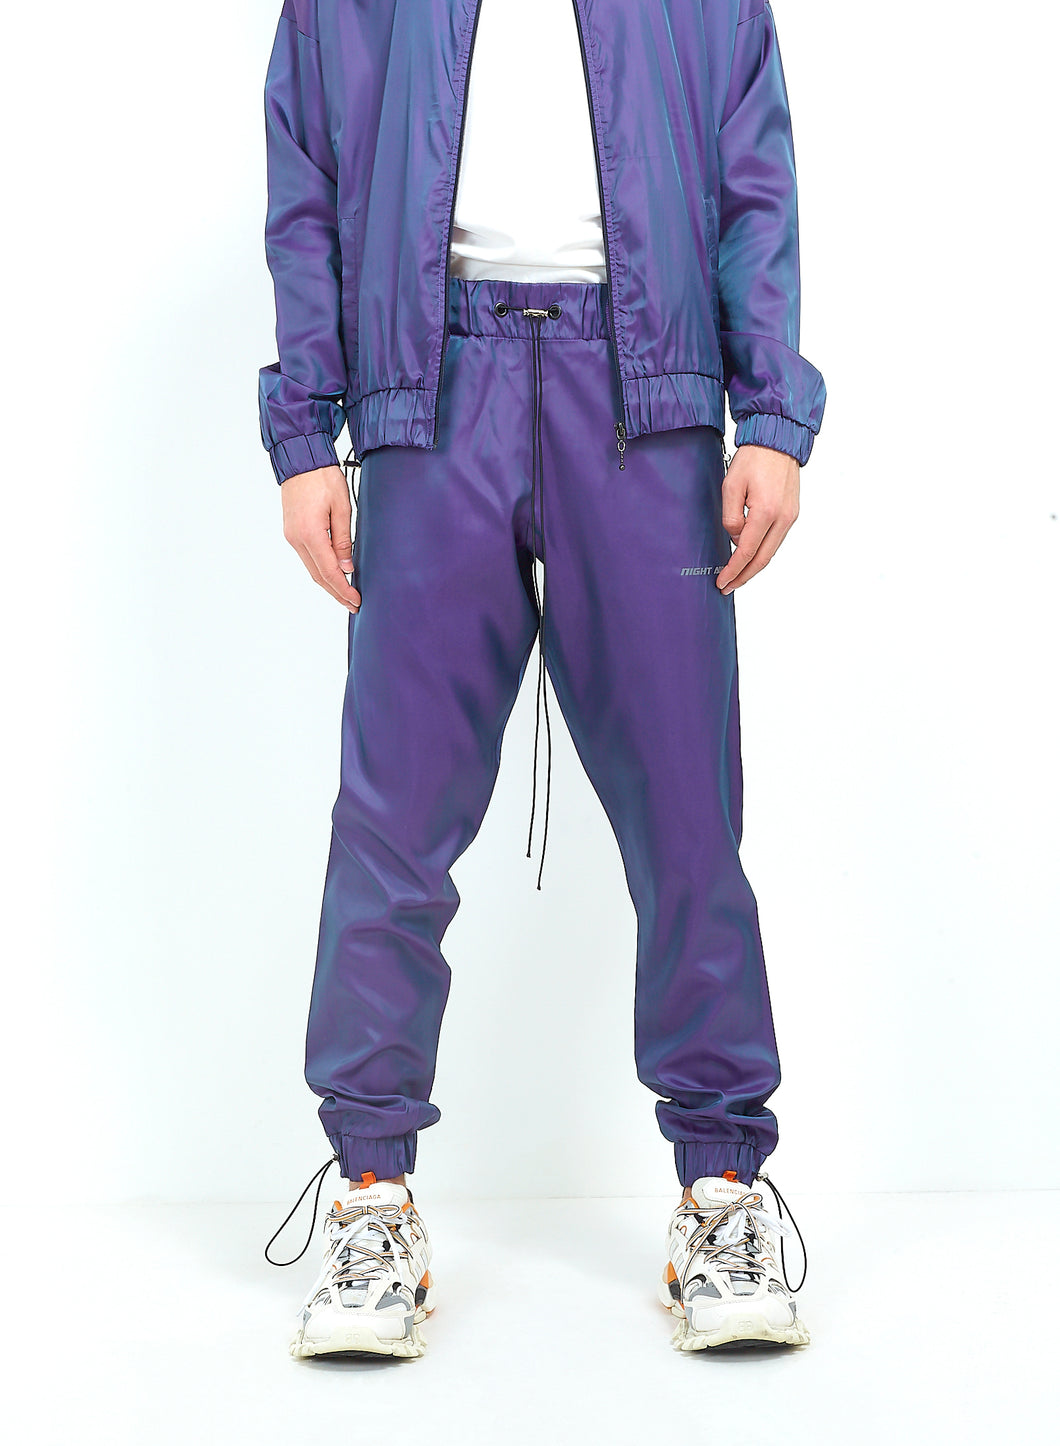 IRIDESCENT PURPLE JOGGERS